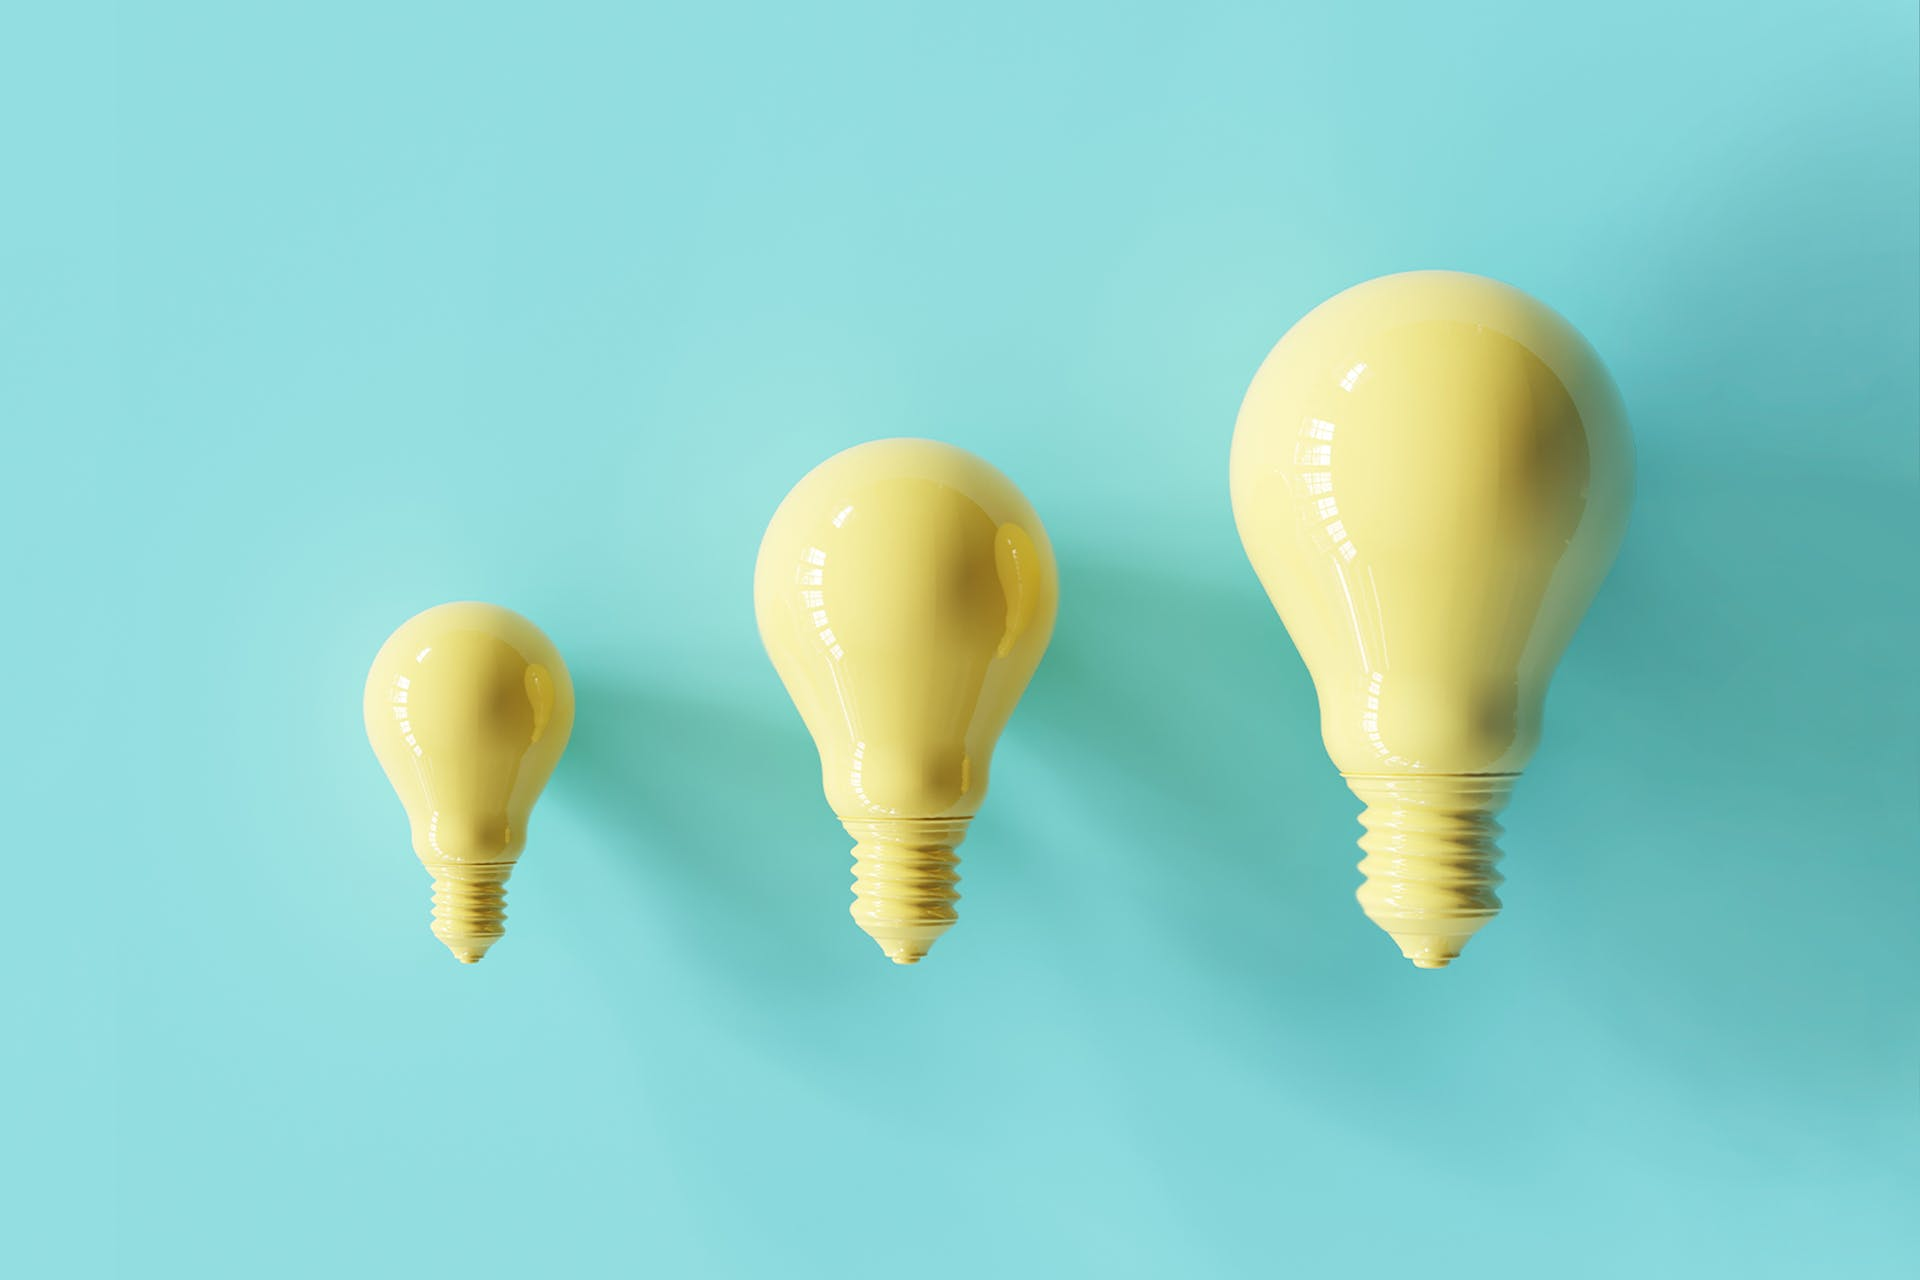 Three yellow lightbulbs lined up next to one another. The lightbulbs are three different sizes, but all the same shape.